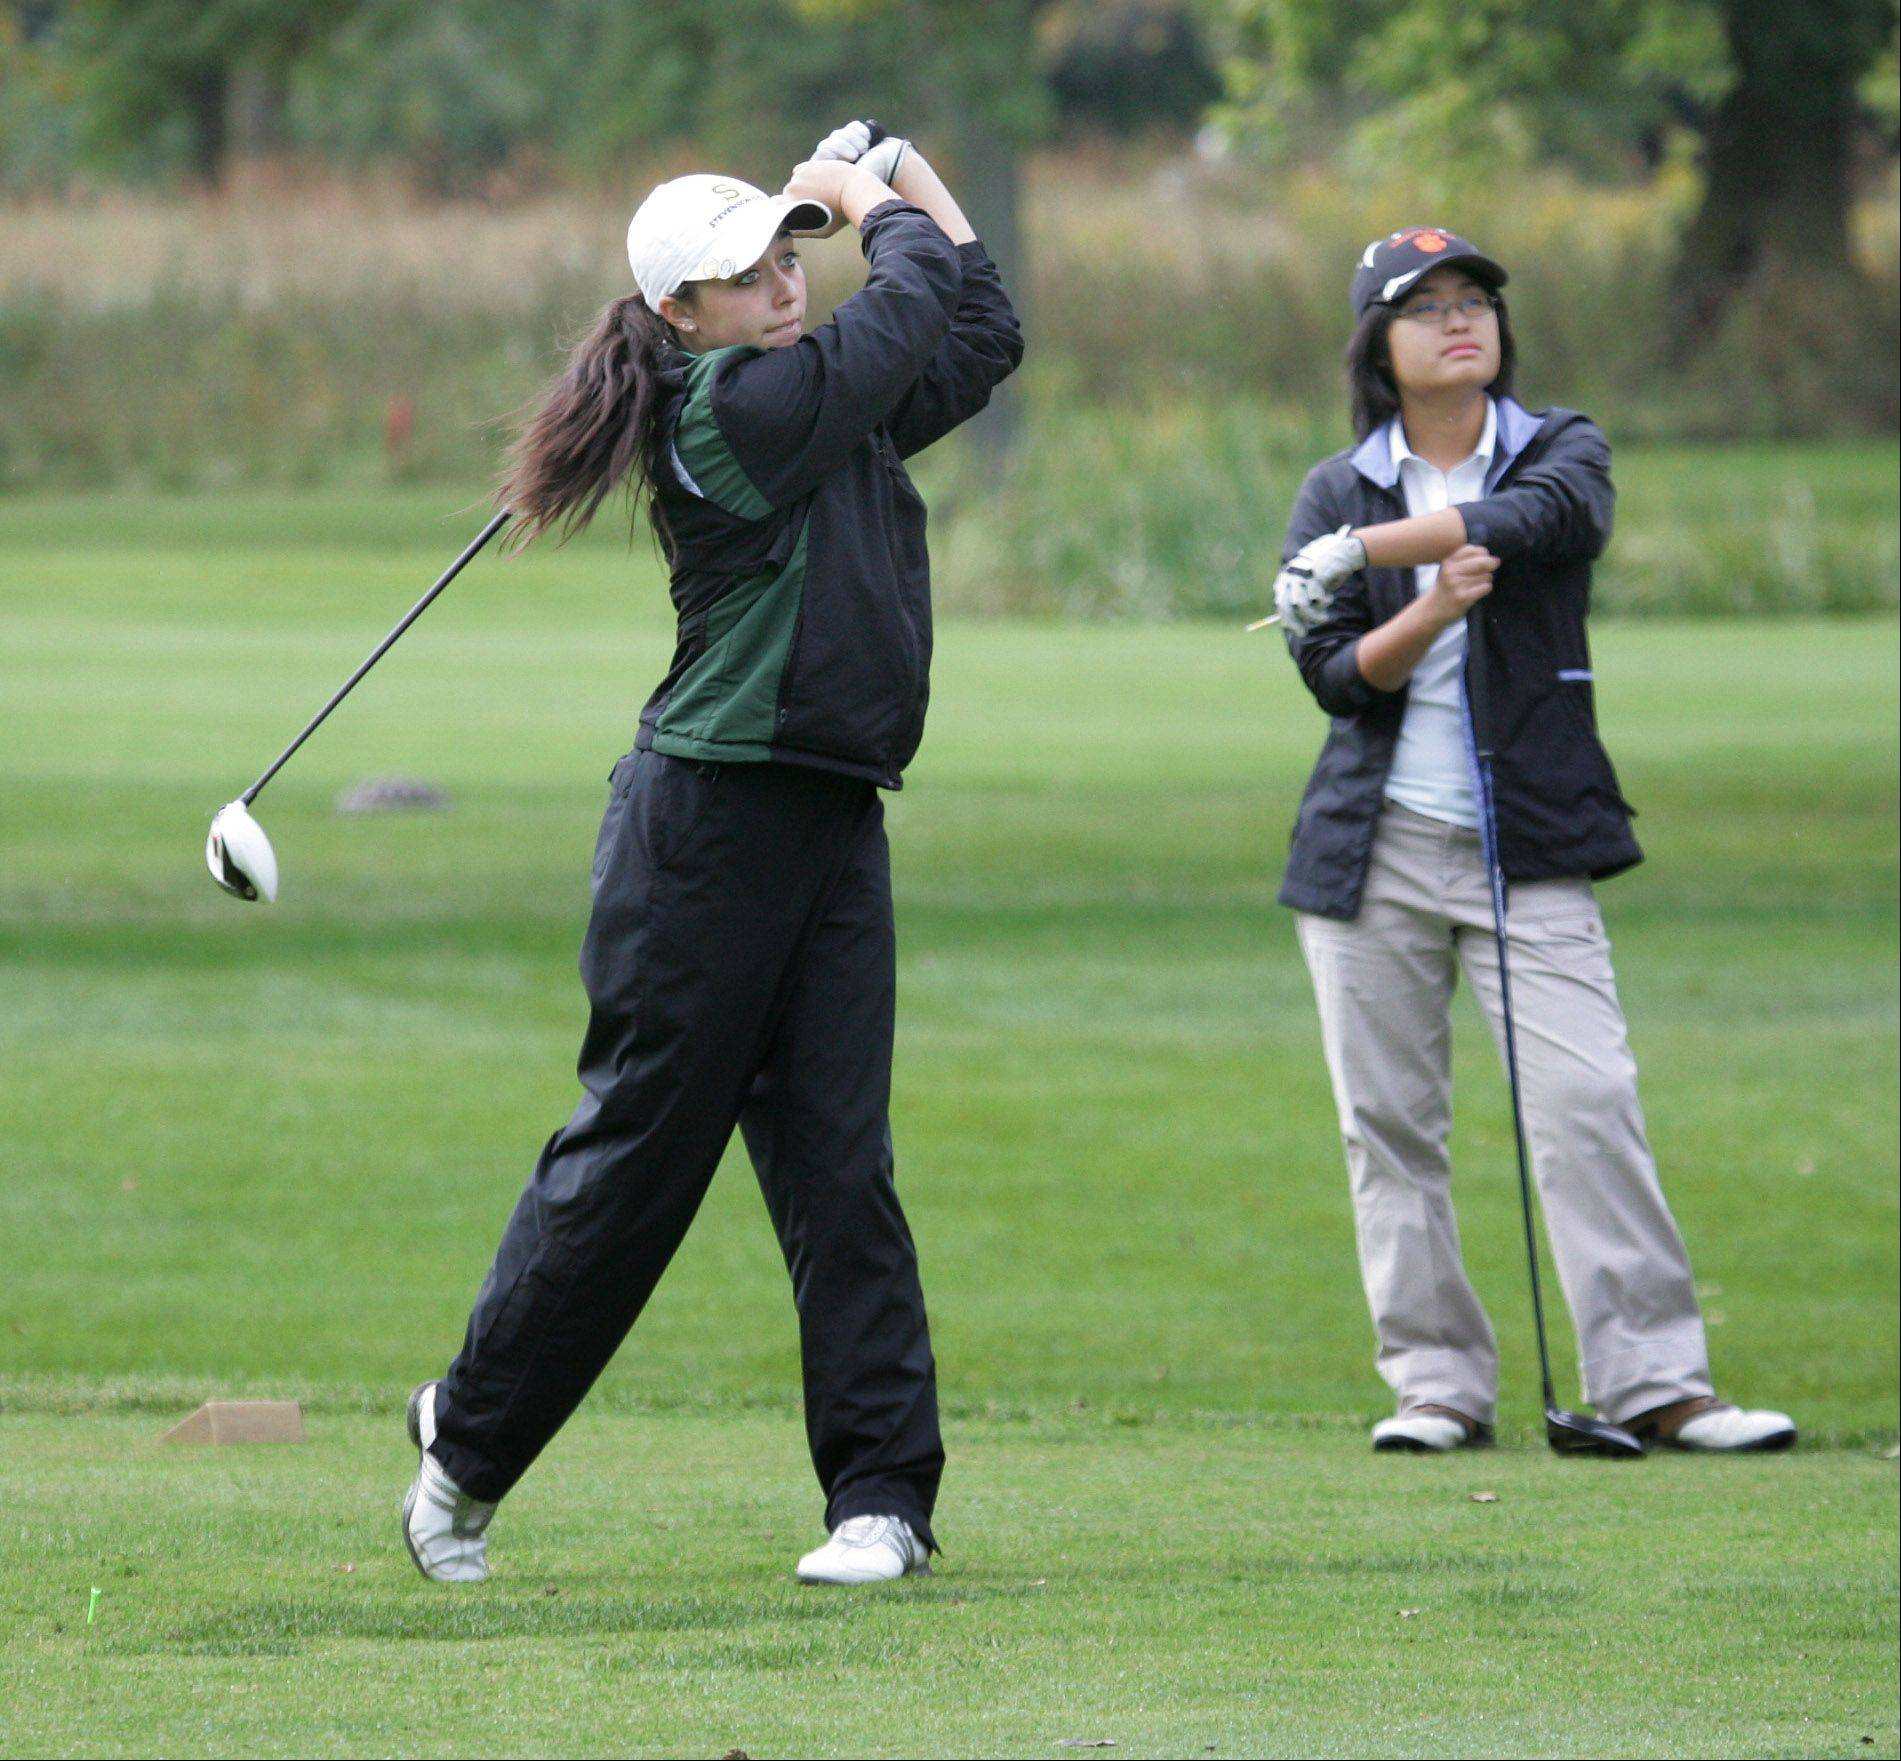 Stevenson golfer Stephanie Miller tees off on the third hole during the North Suburban Conference girls golf tournament Tuesday at Deerpath Golf Course in Lake Forest. Libertyville golfer Camilla Ou is to the right.